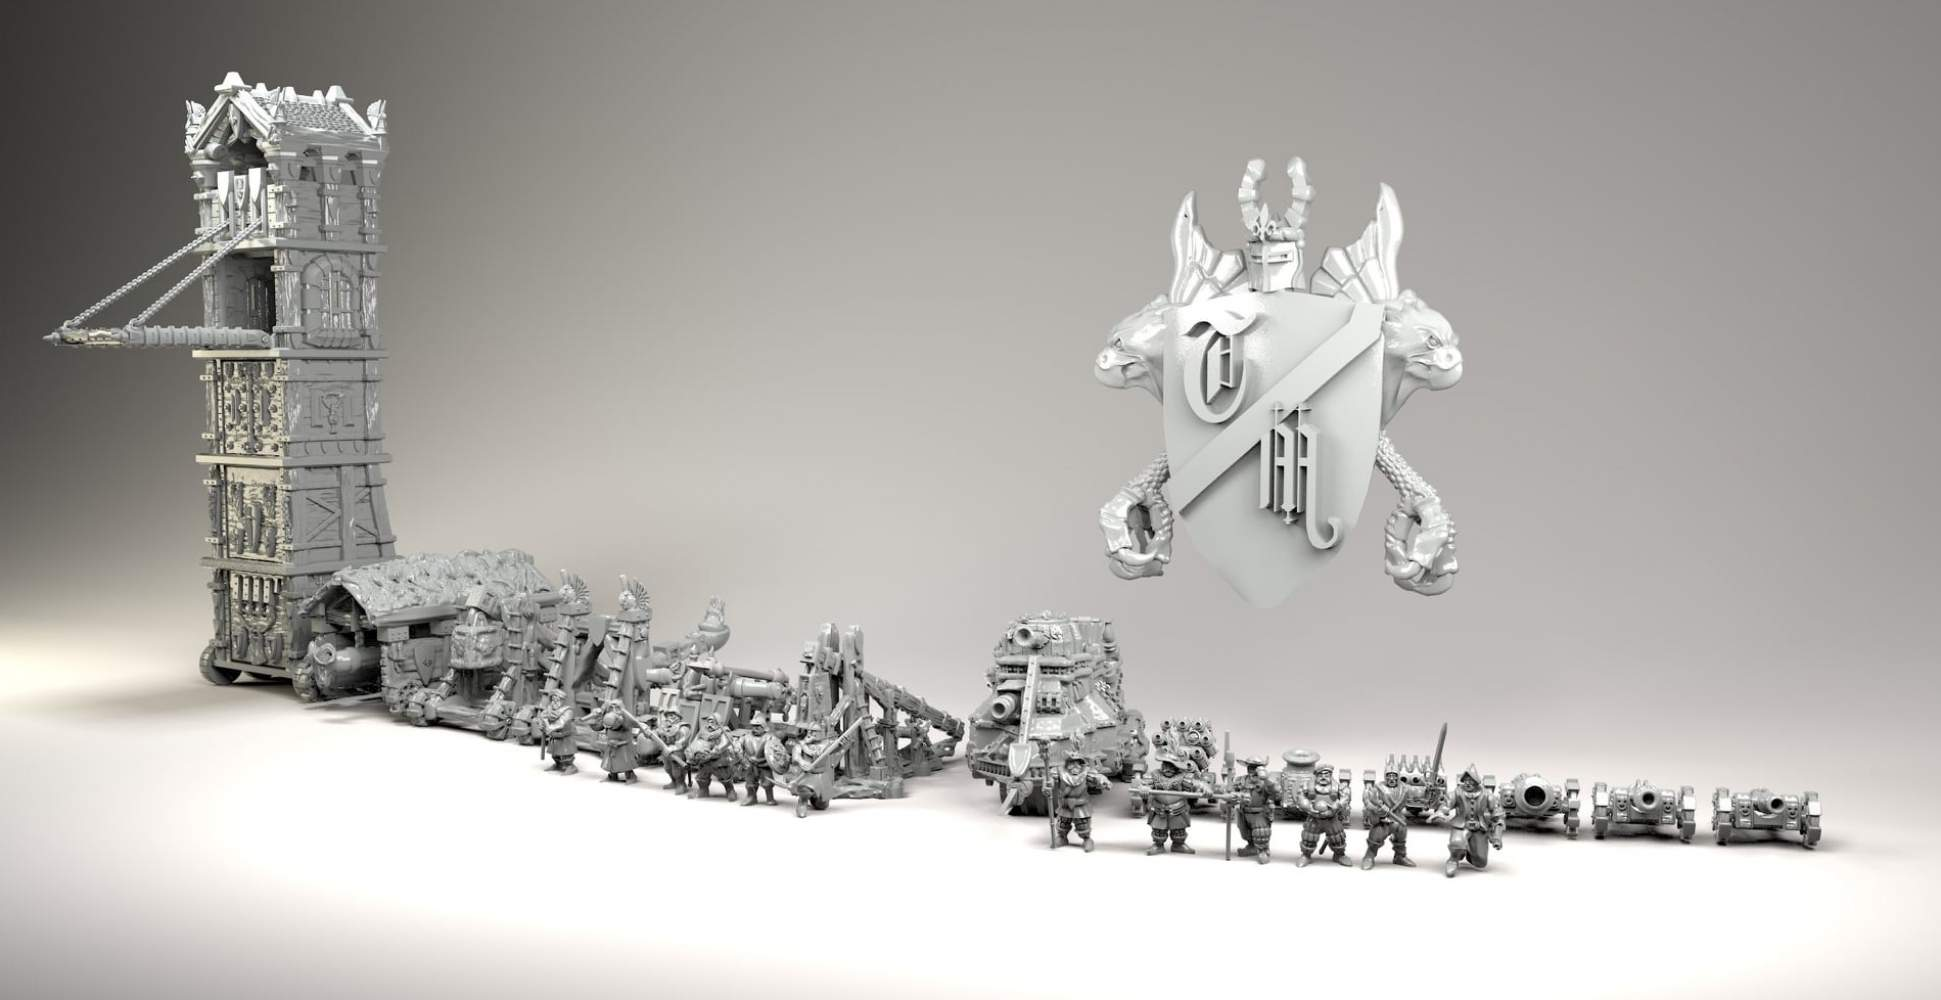 Siege equipment stl files for 3dPrinting